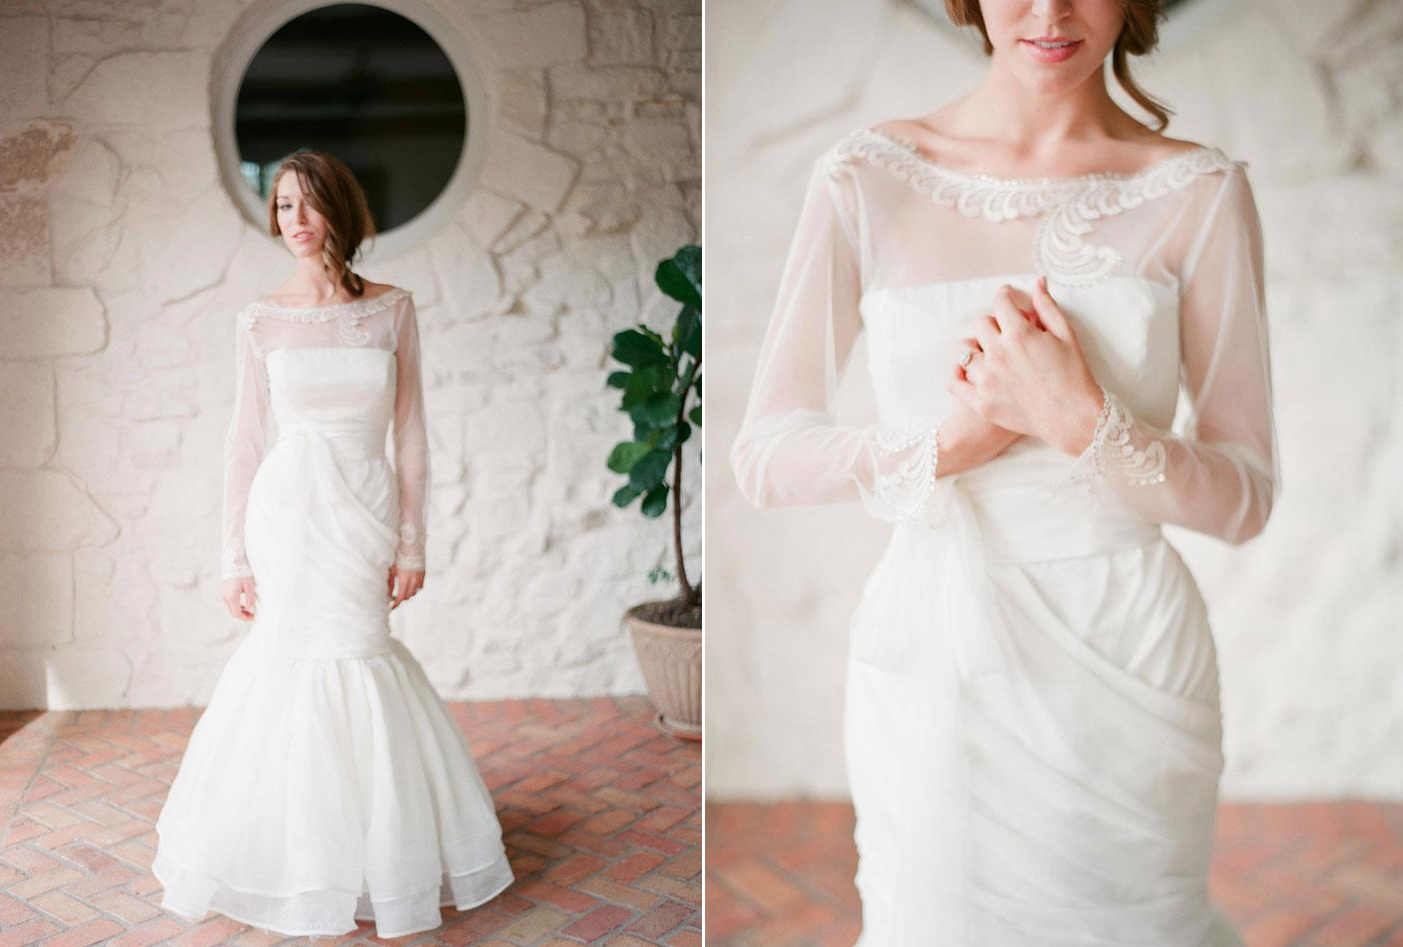 Mermaid Wedding Gowns With Sleeves: Romantic Mermaid Wedding Gown With Sheer Sleeves